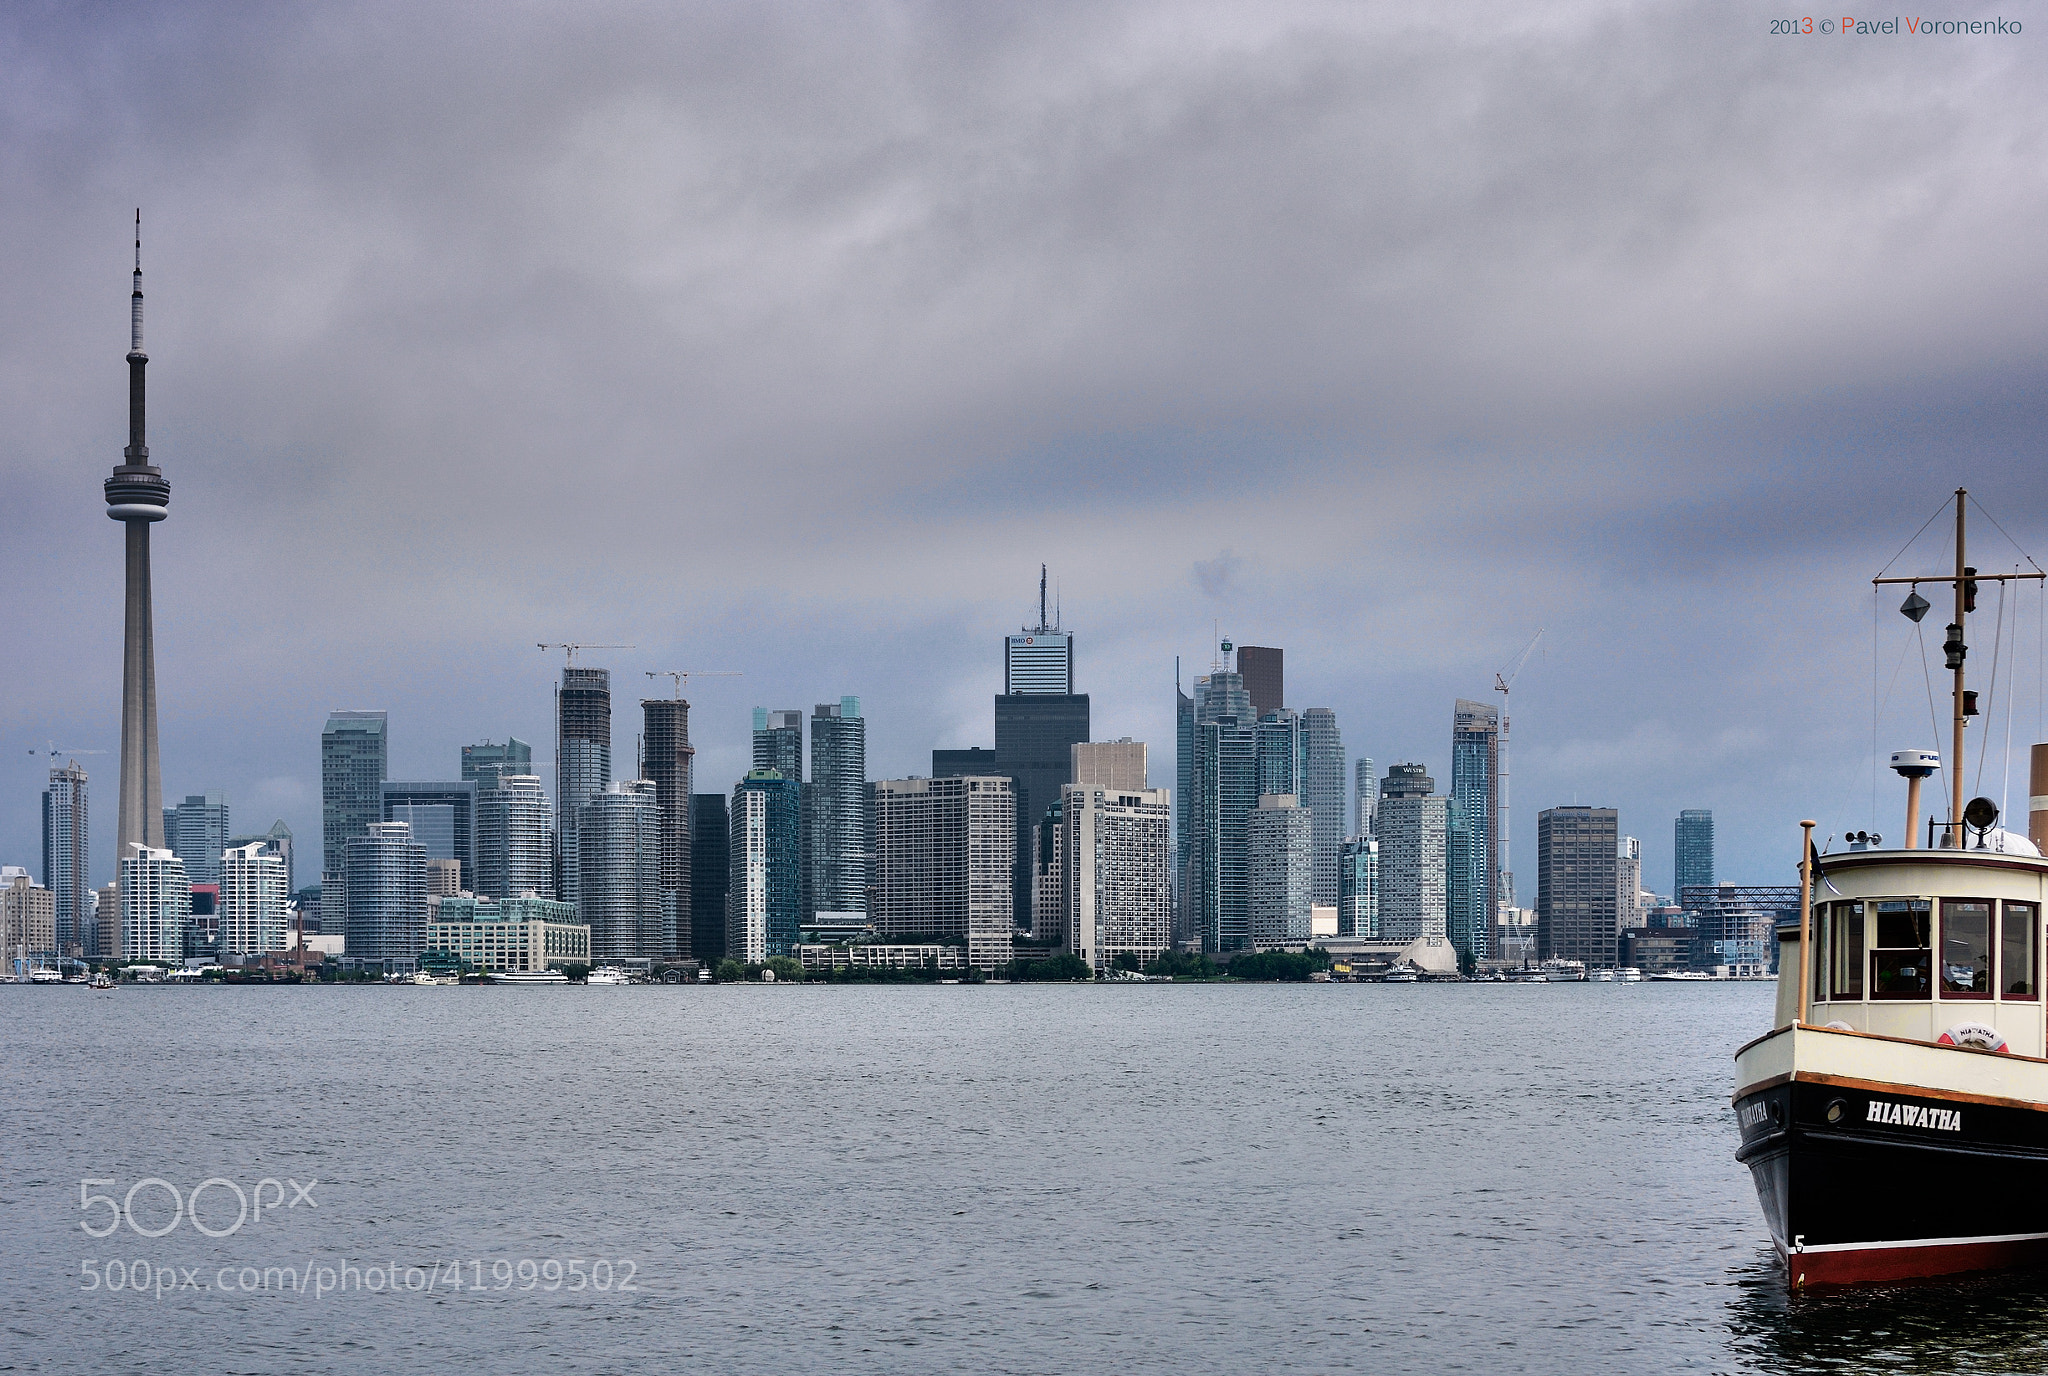 Photograph The Rising from water City of Toronto by Pavel Voronenko on 500px